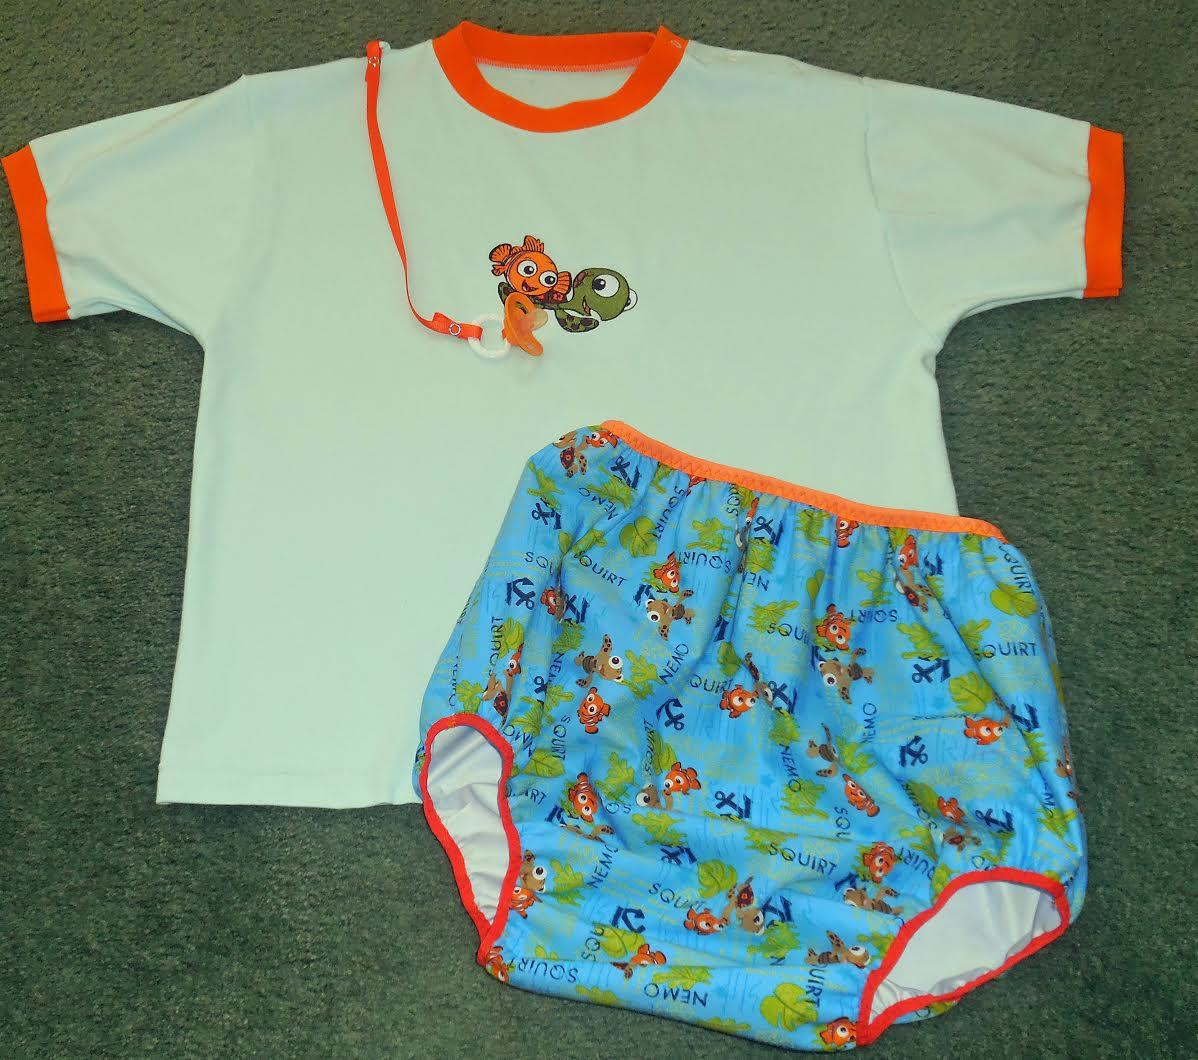 Baby outfit with Nemo and Squirt embroidery design